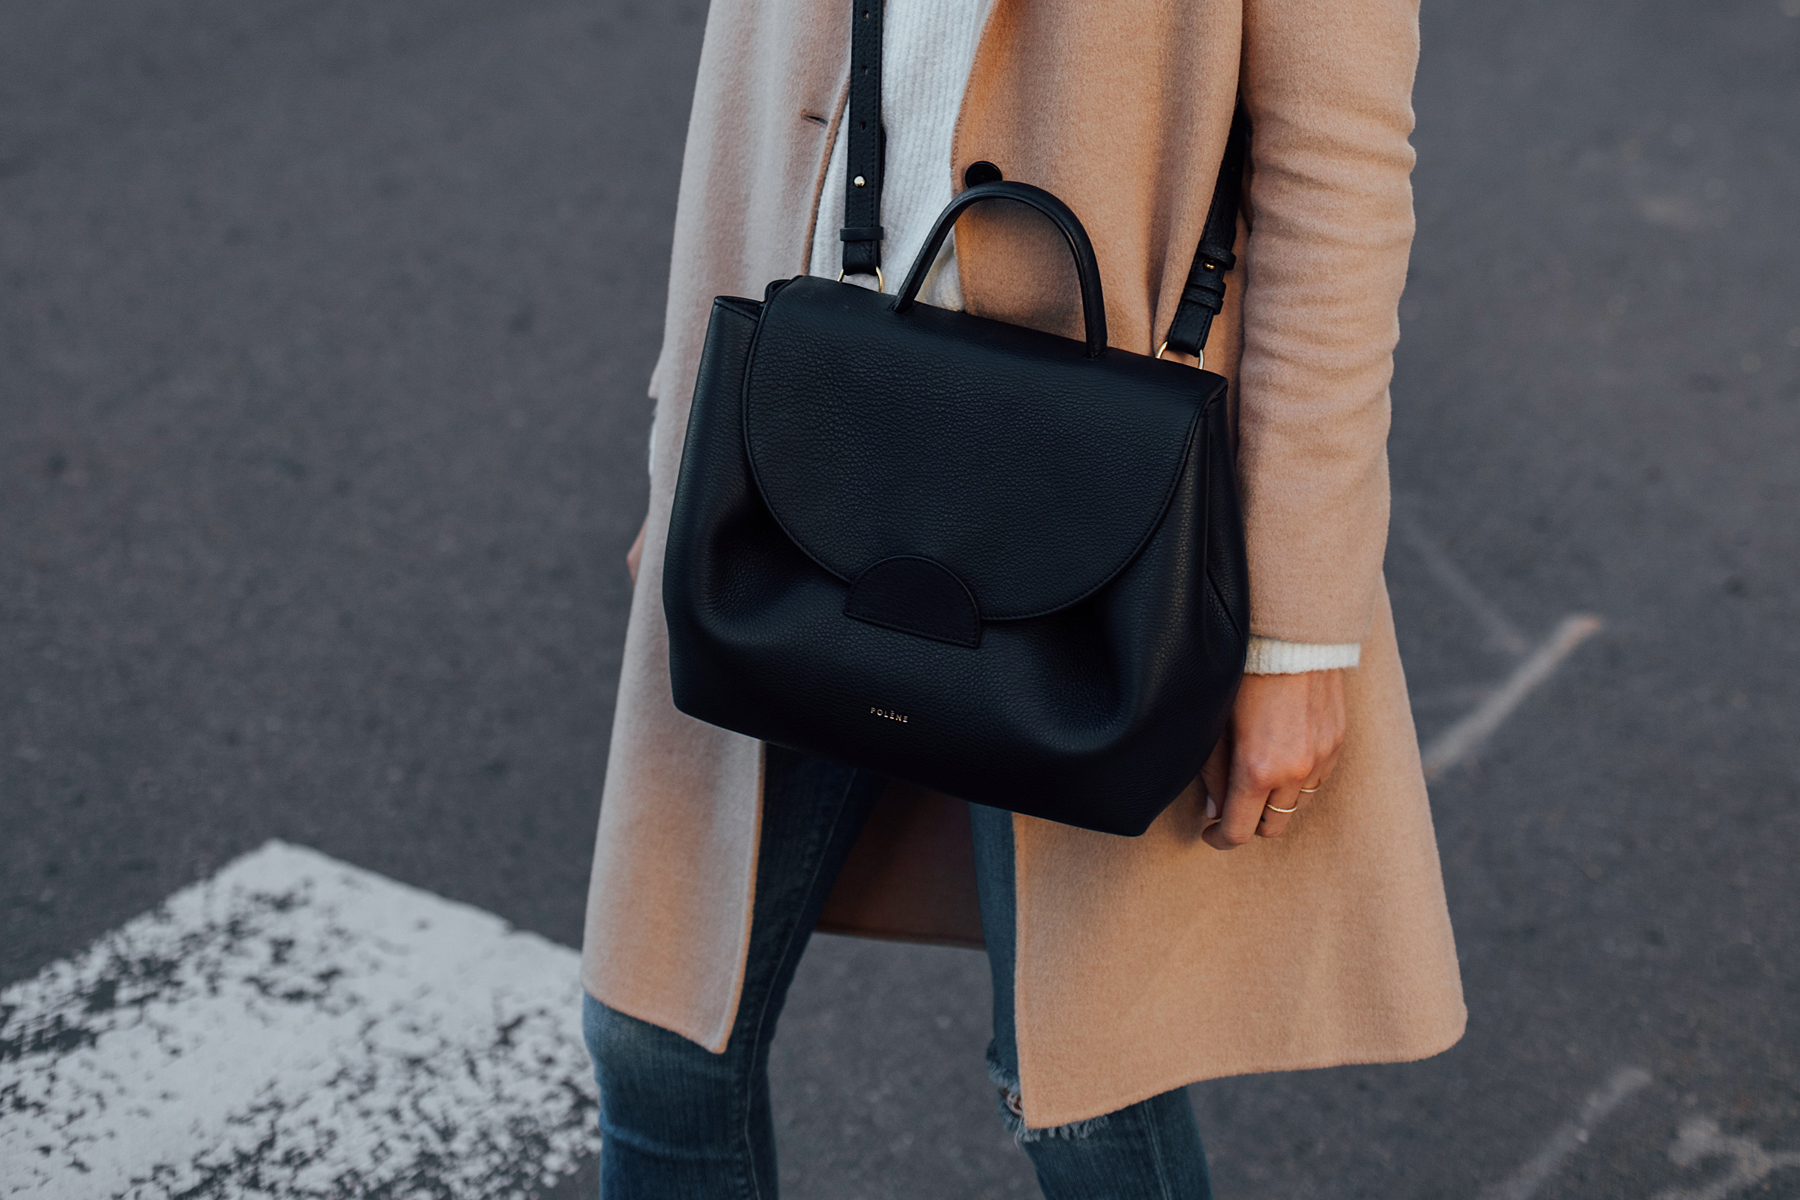 Woman Wearing Polene Black Handbag Camel Coat White Sweater Skinny Jeans Fashion Jackson San Diego Fashion Blogger Street Style